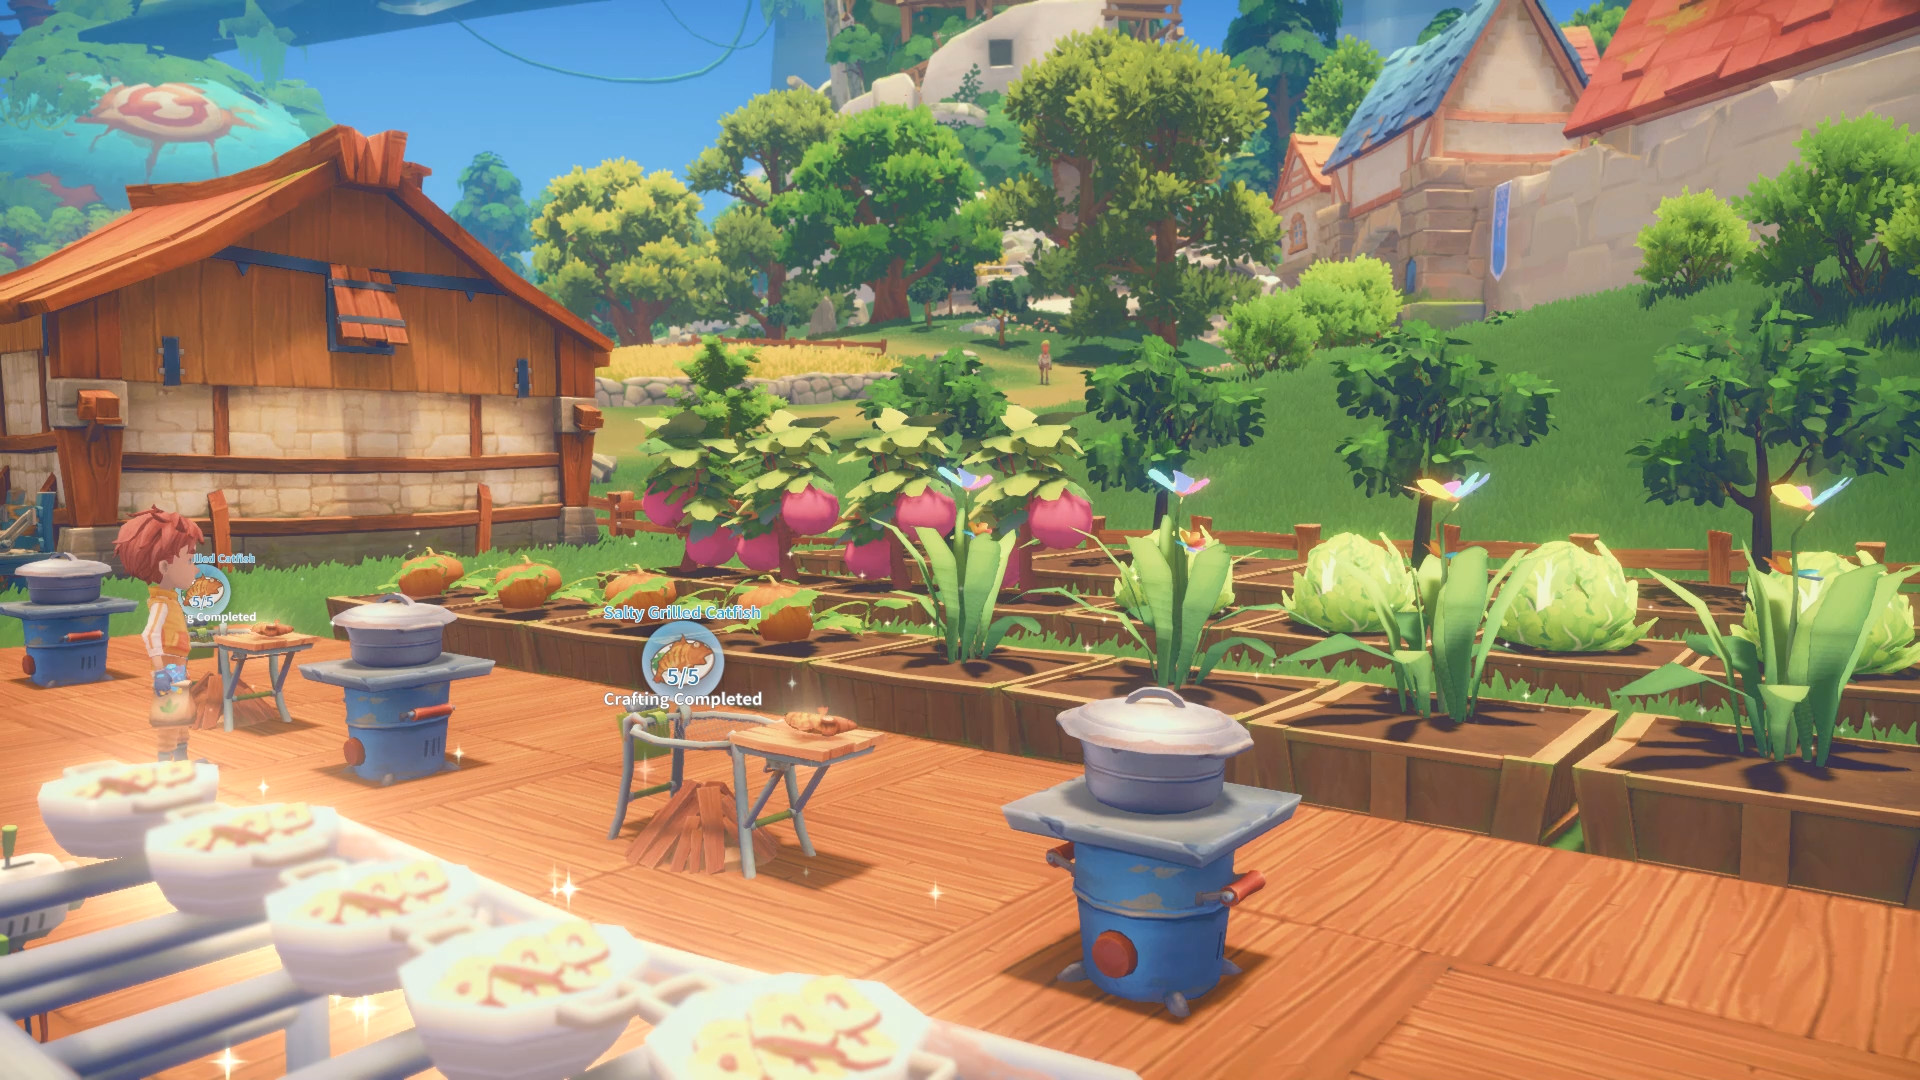 My Time At Portia - Crafting